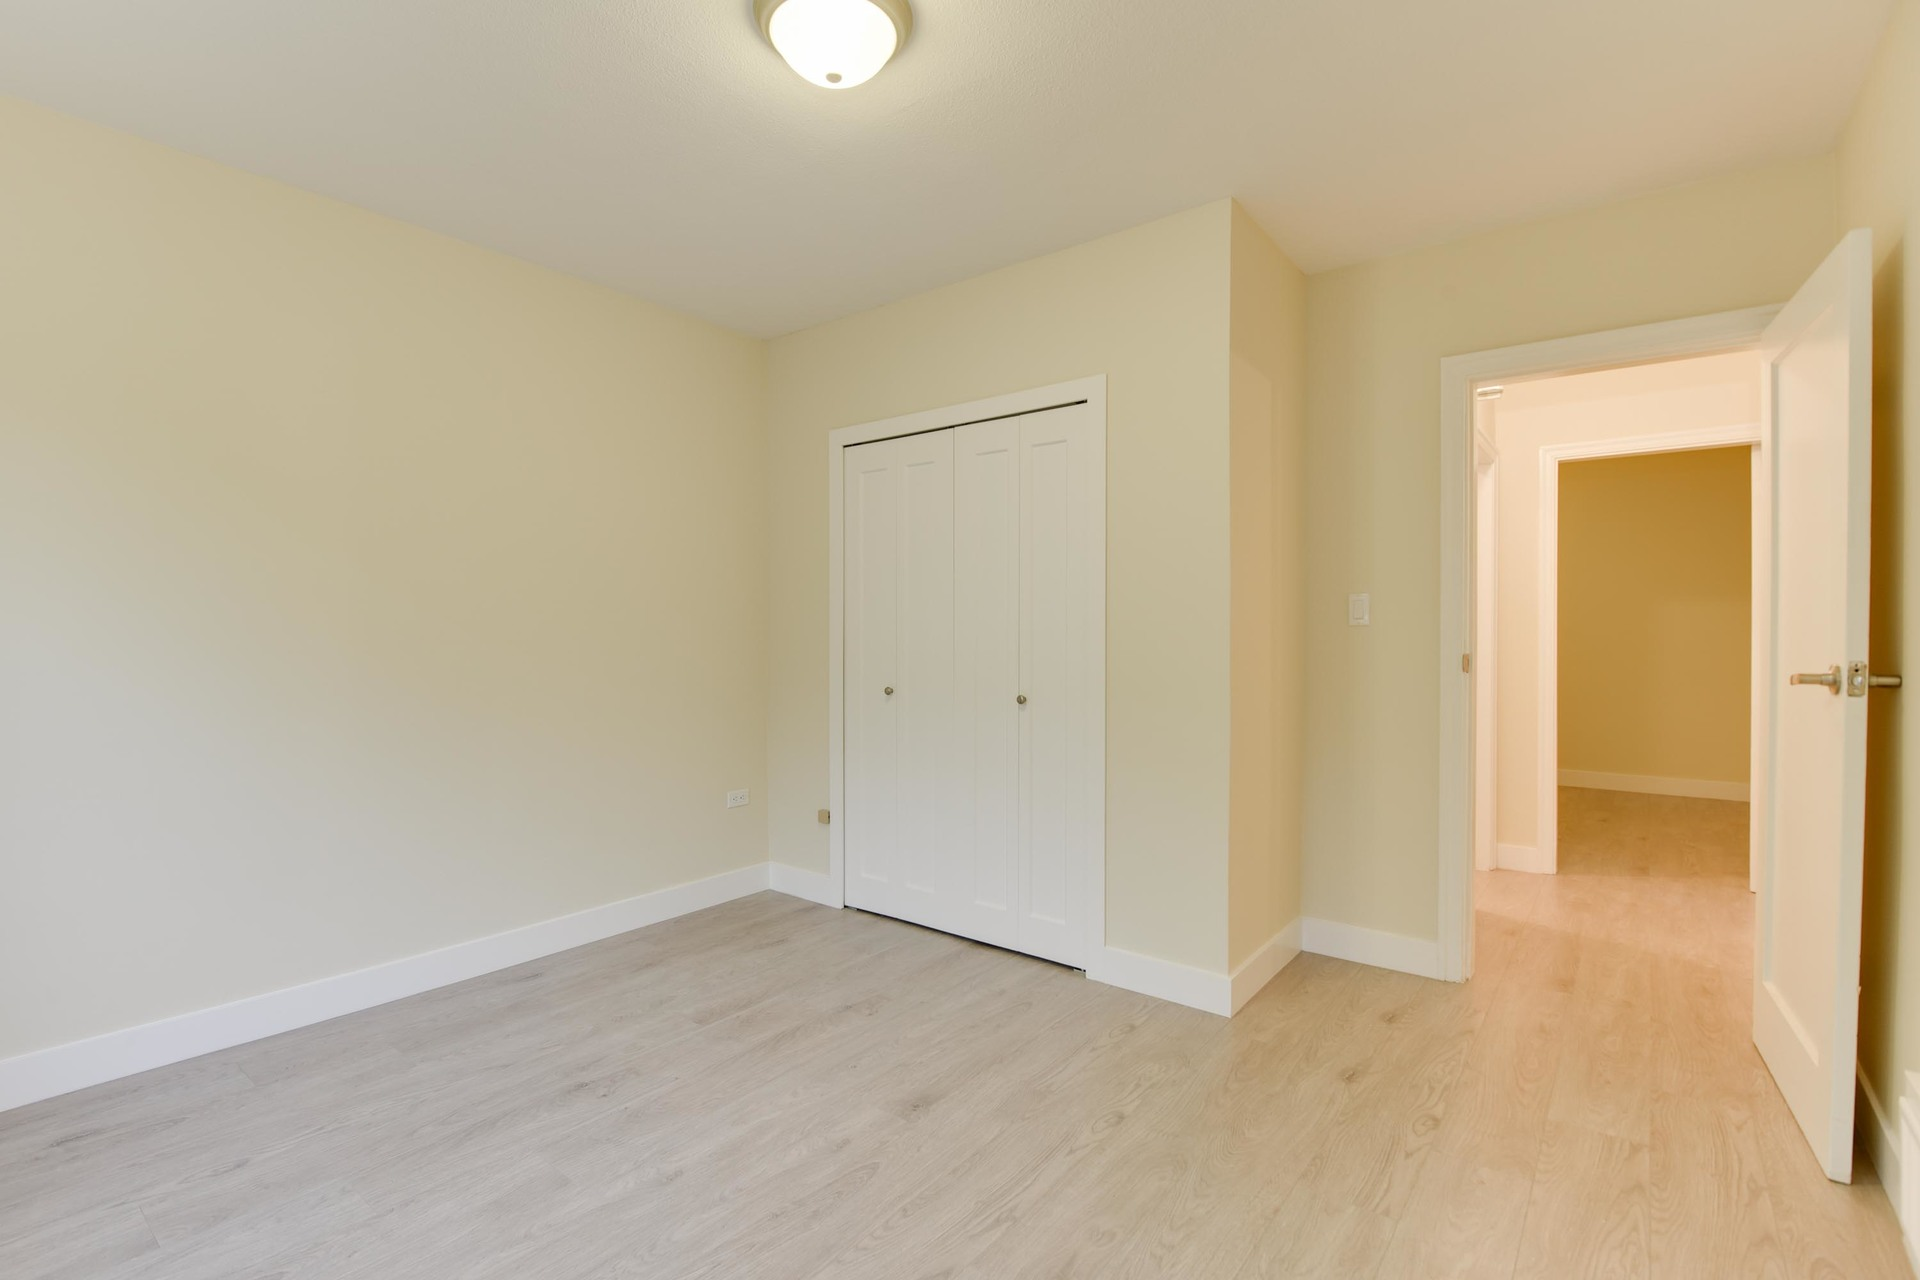 4-1-of-1 at 1285 East 18th Avenue, Knight, Vancouver East